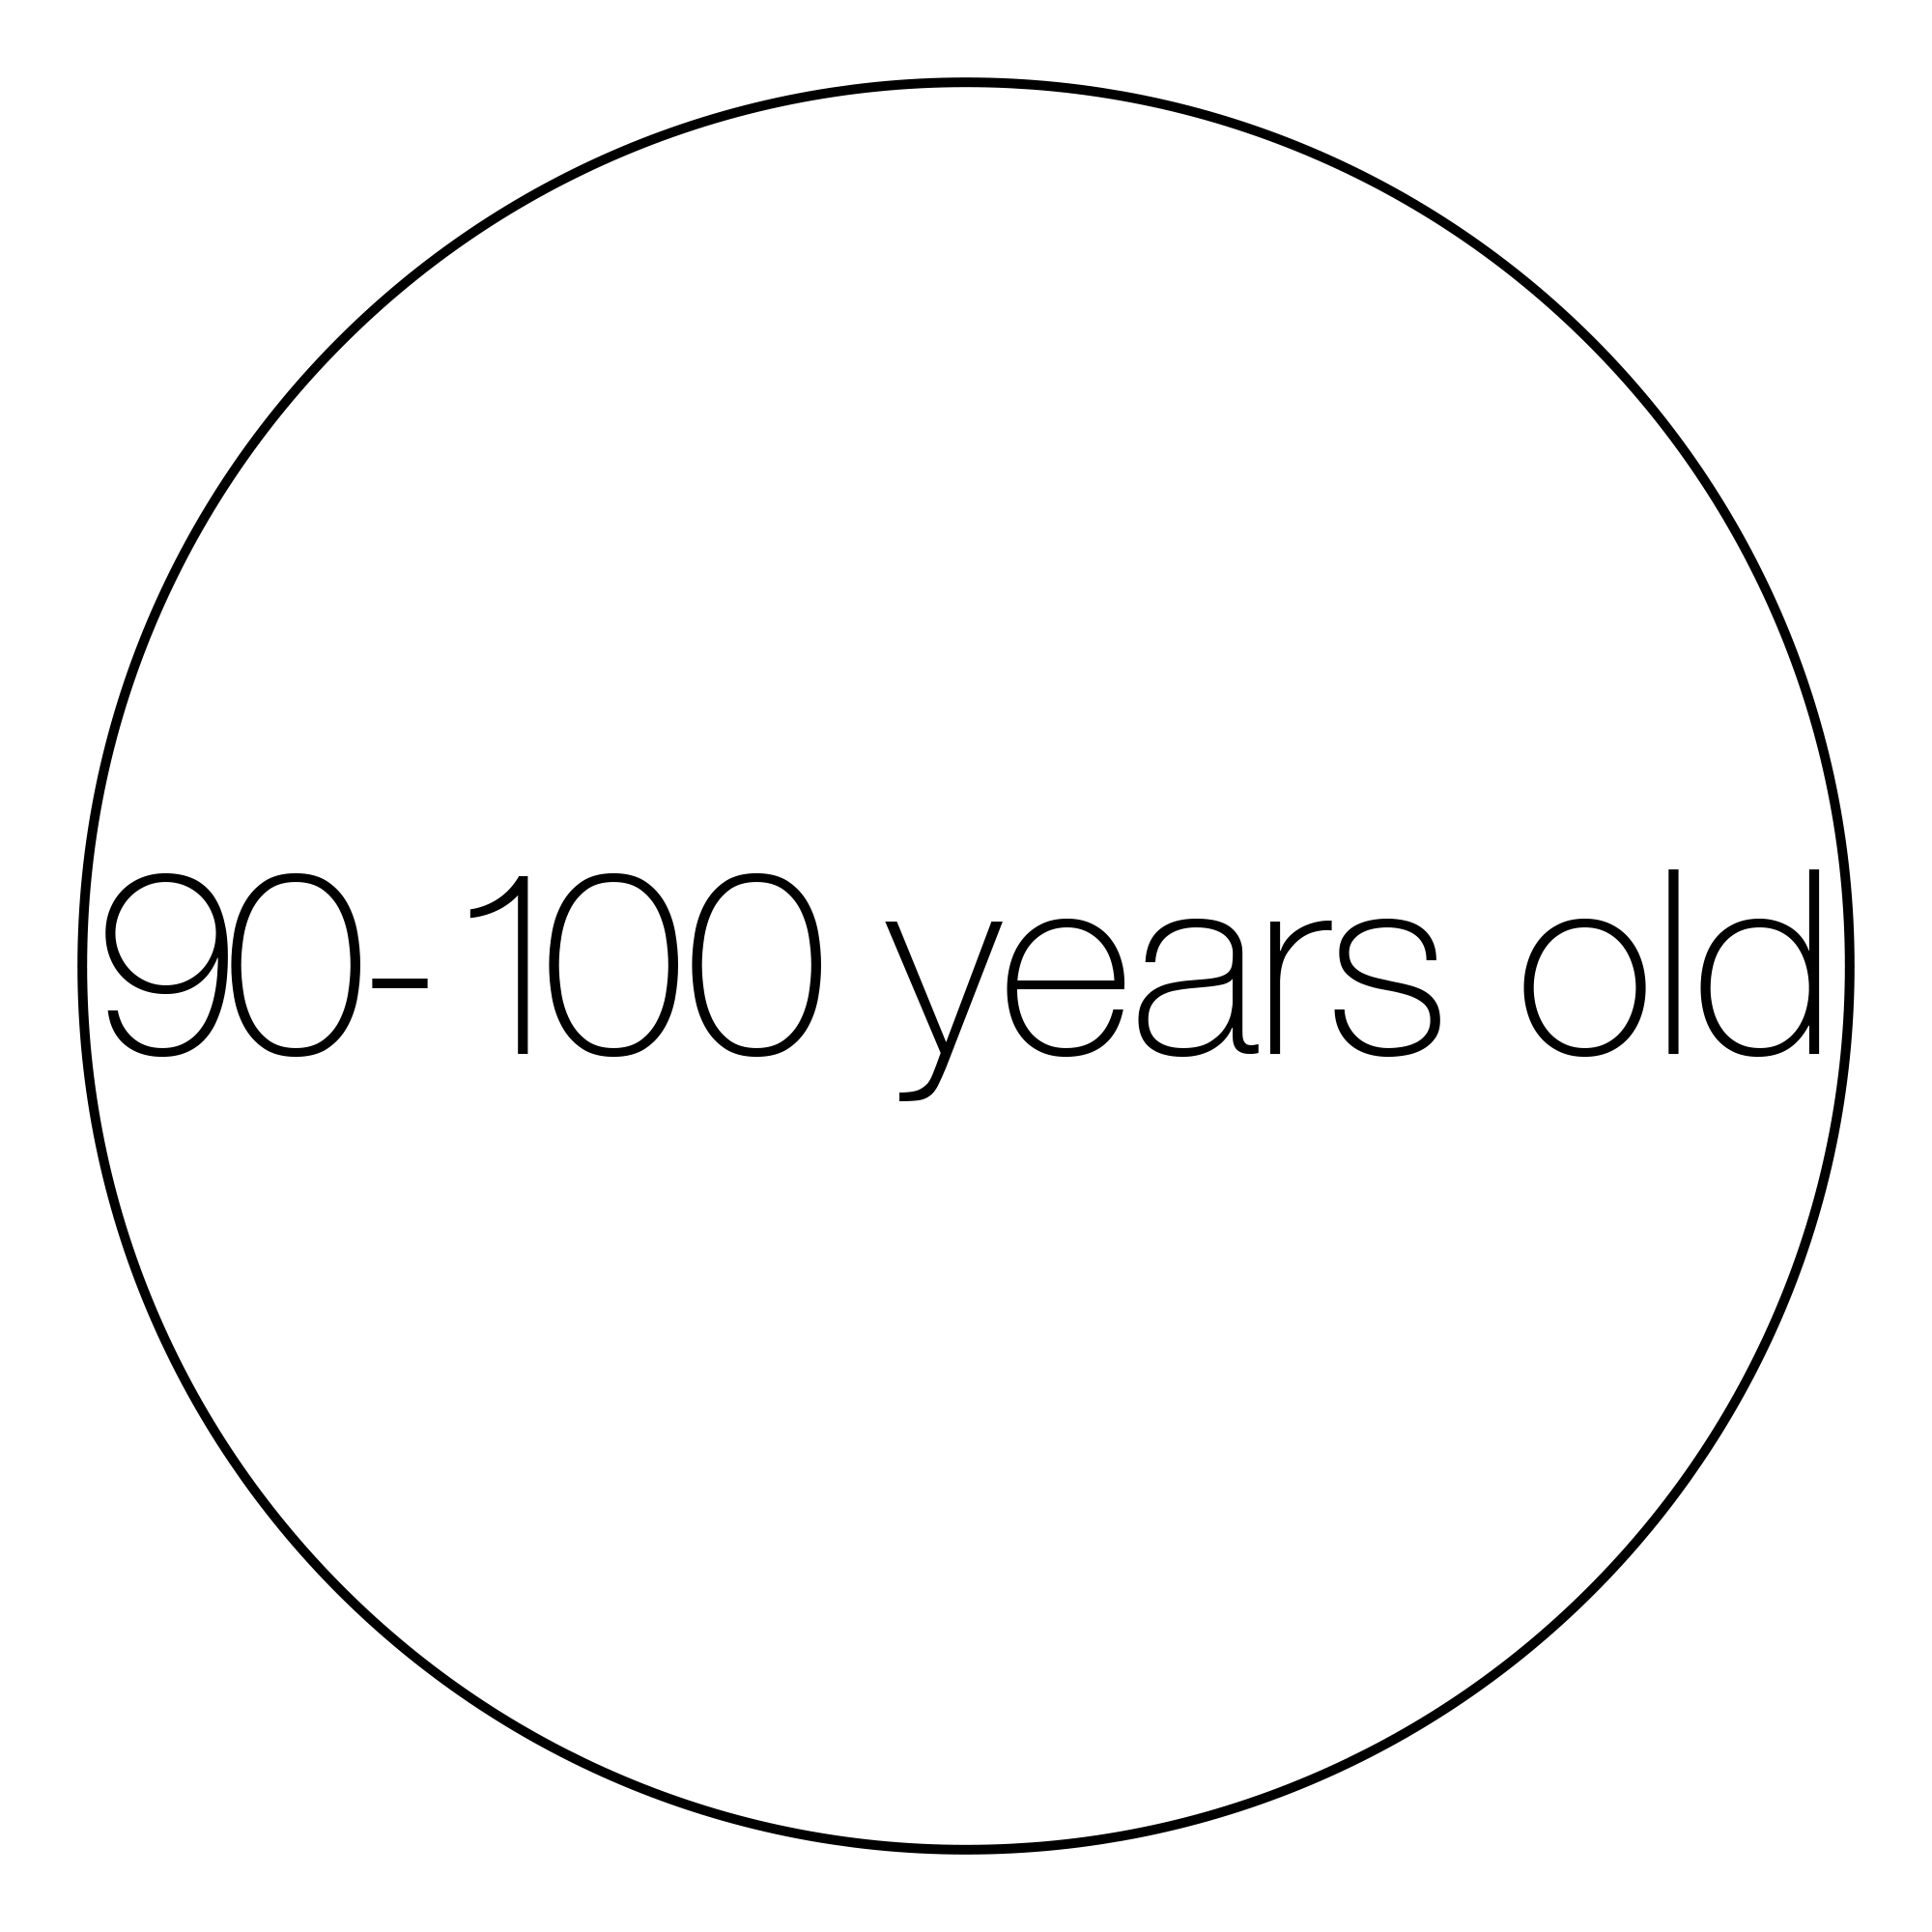 attribute-age-90-100-years-old